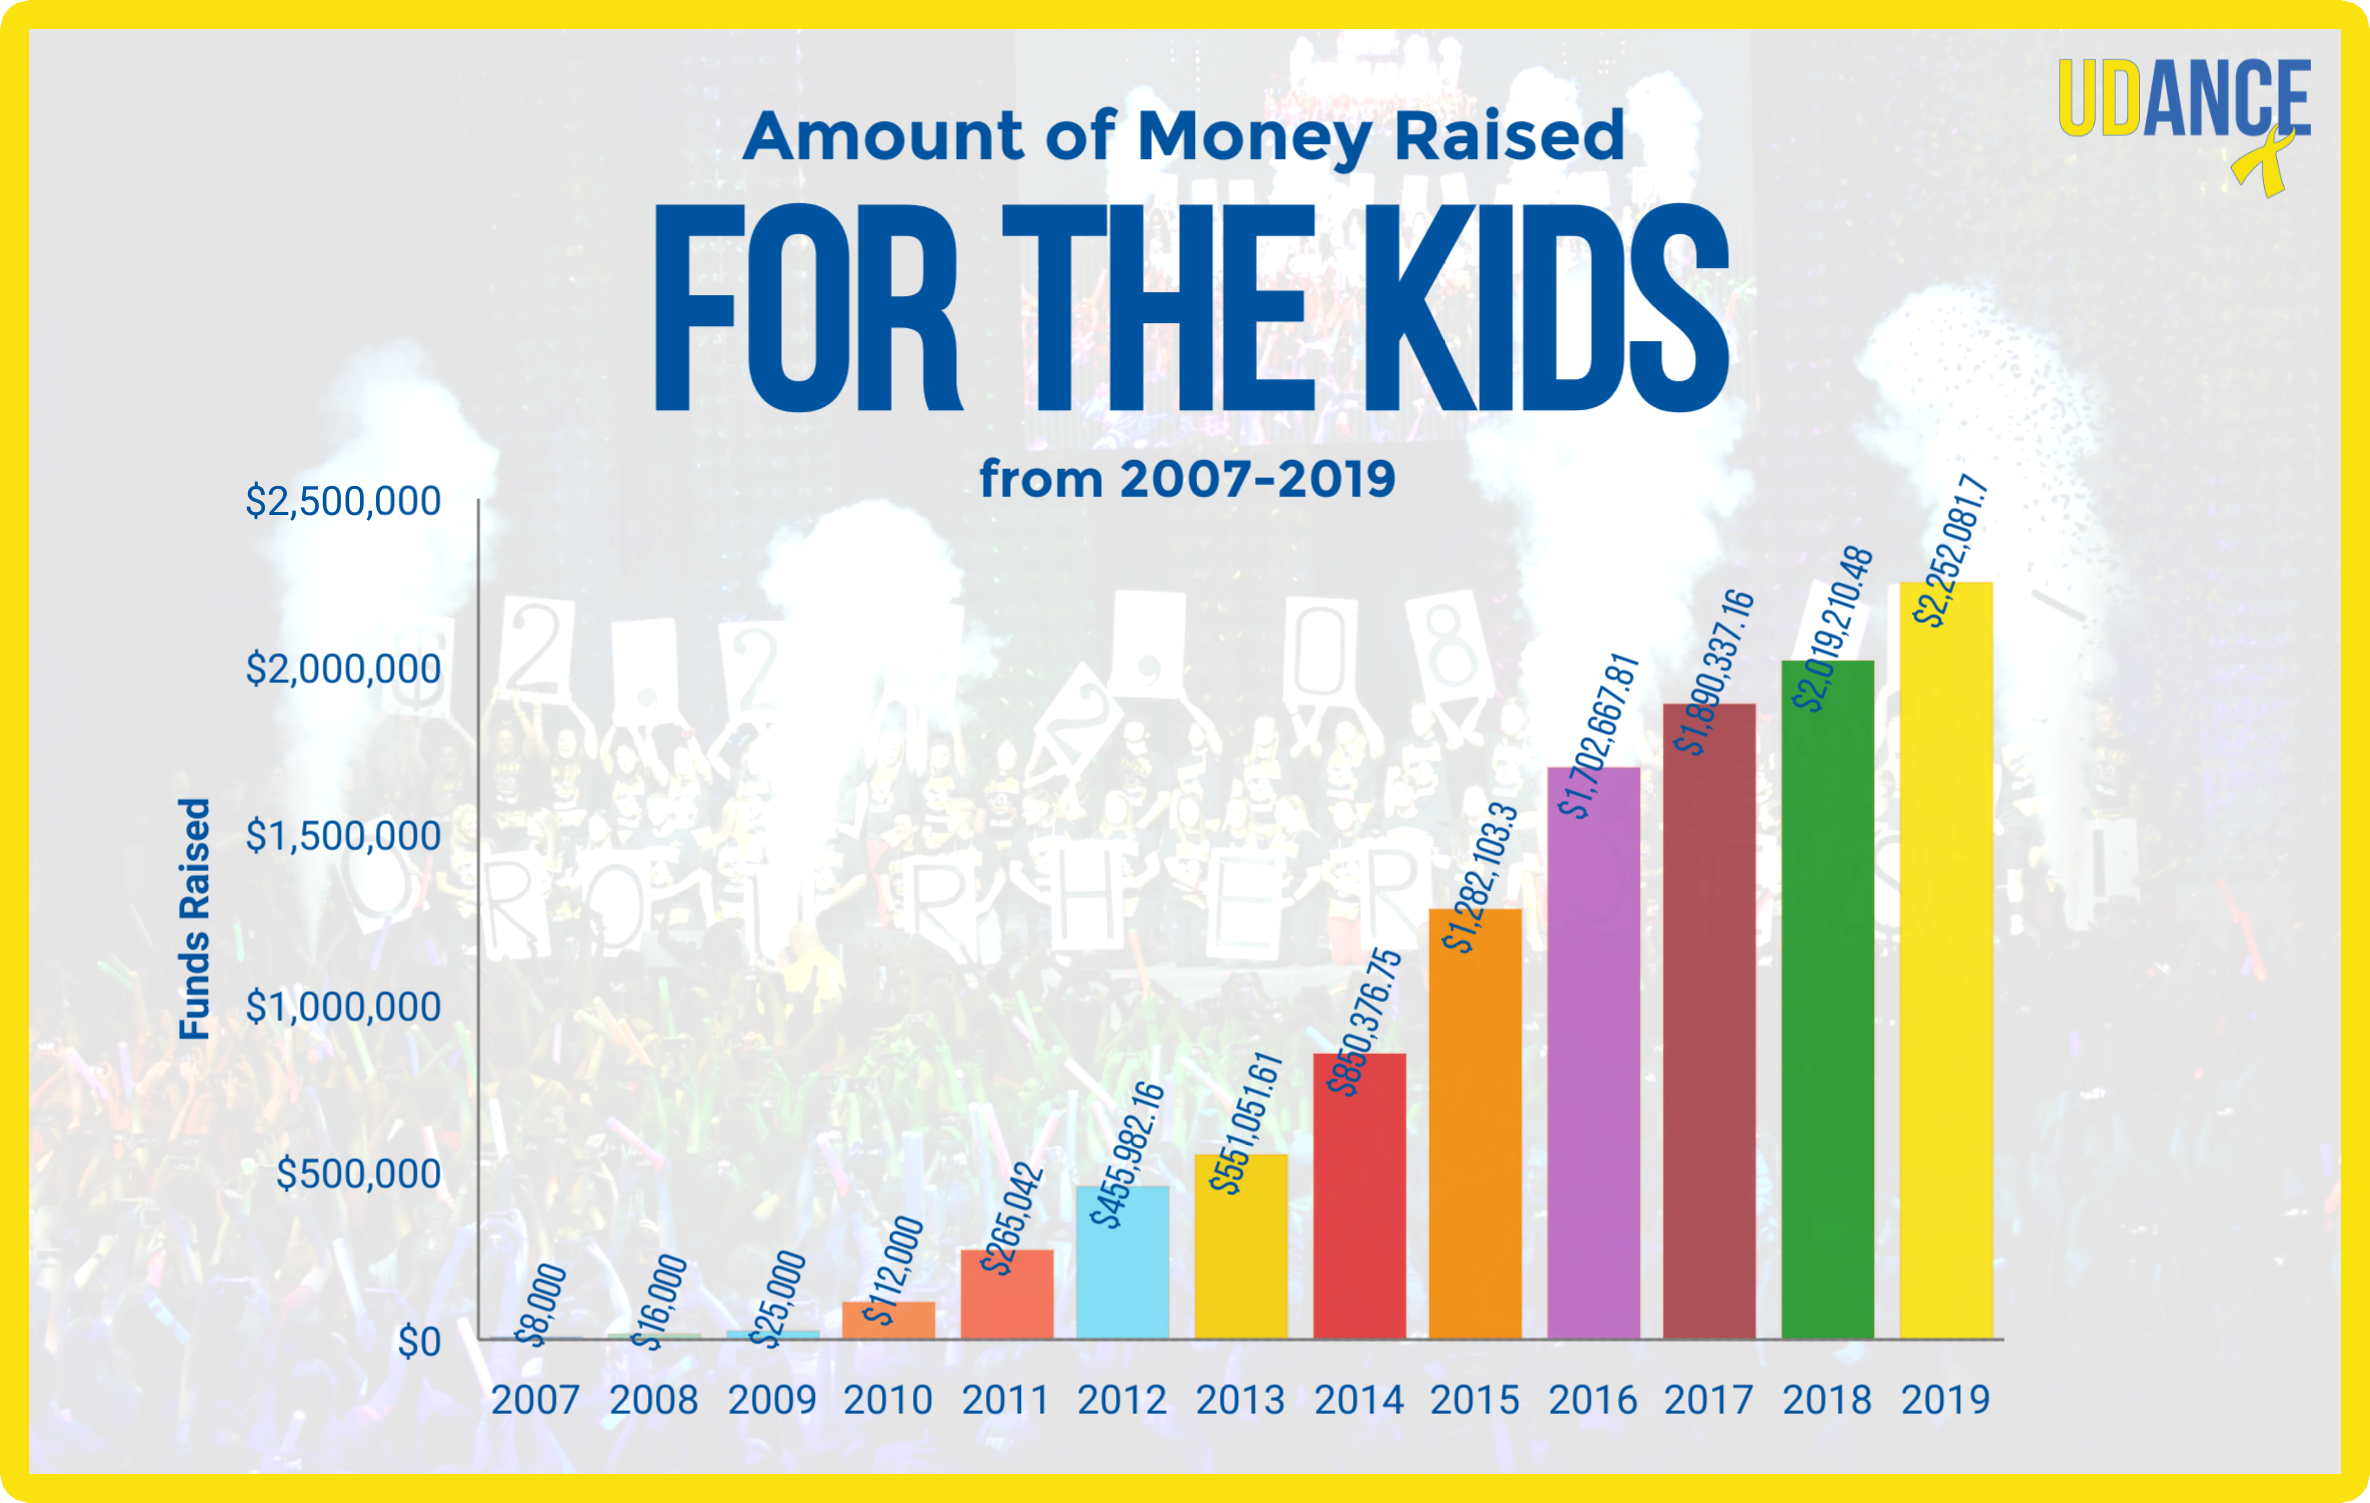 Since 2007, the udance community has raised over $11 million in its 14 years of existence.on march 22, 2020, Udance hopes to add another sum of money to the all-time total. -